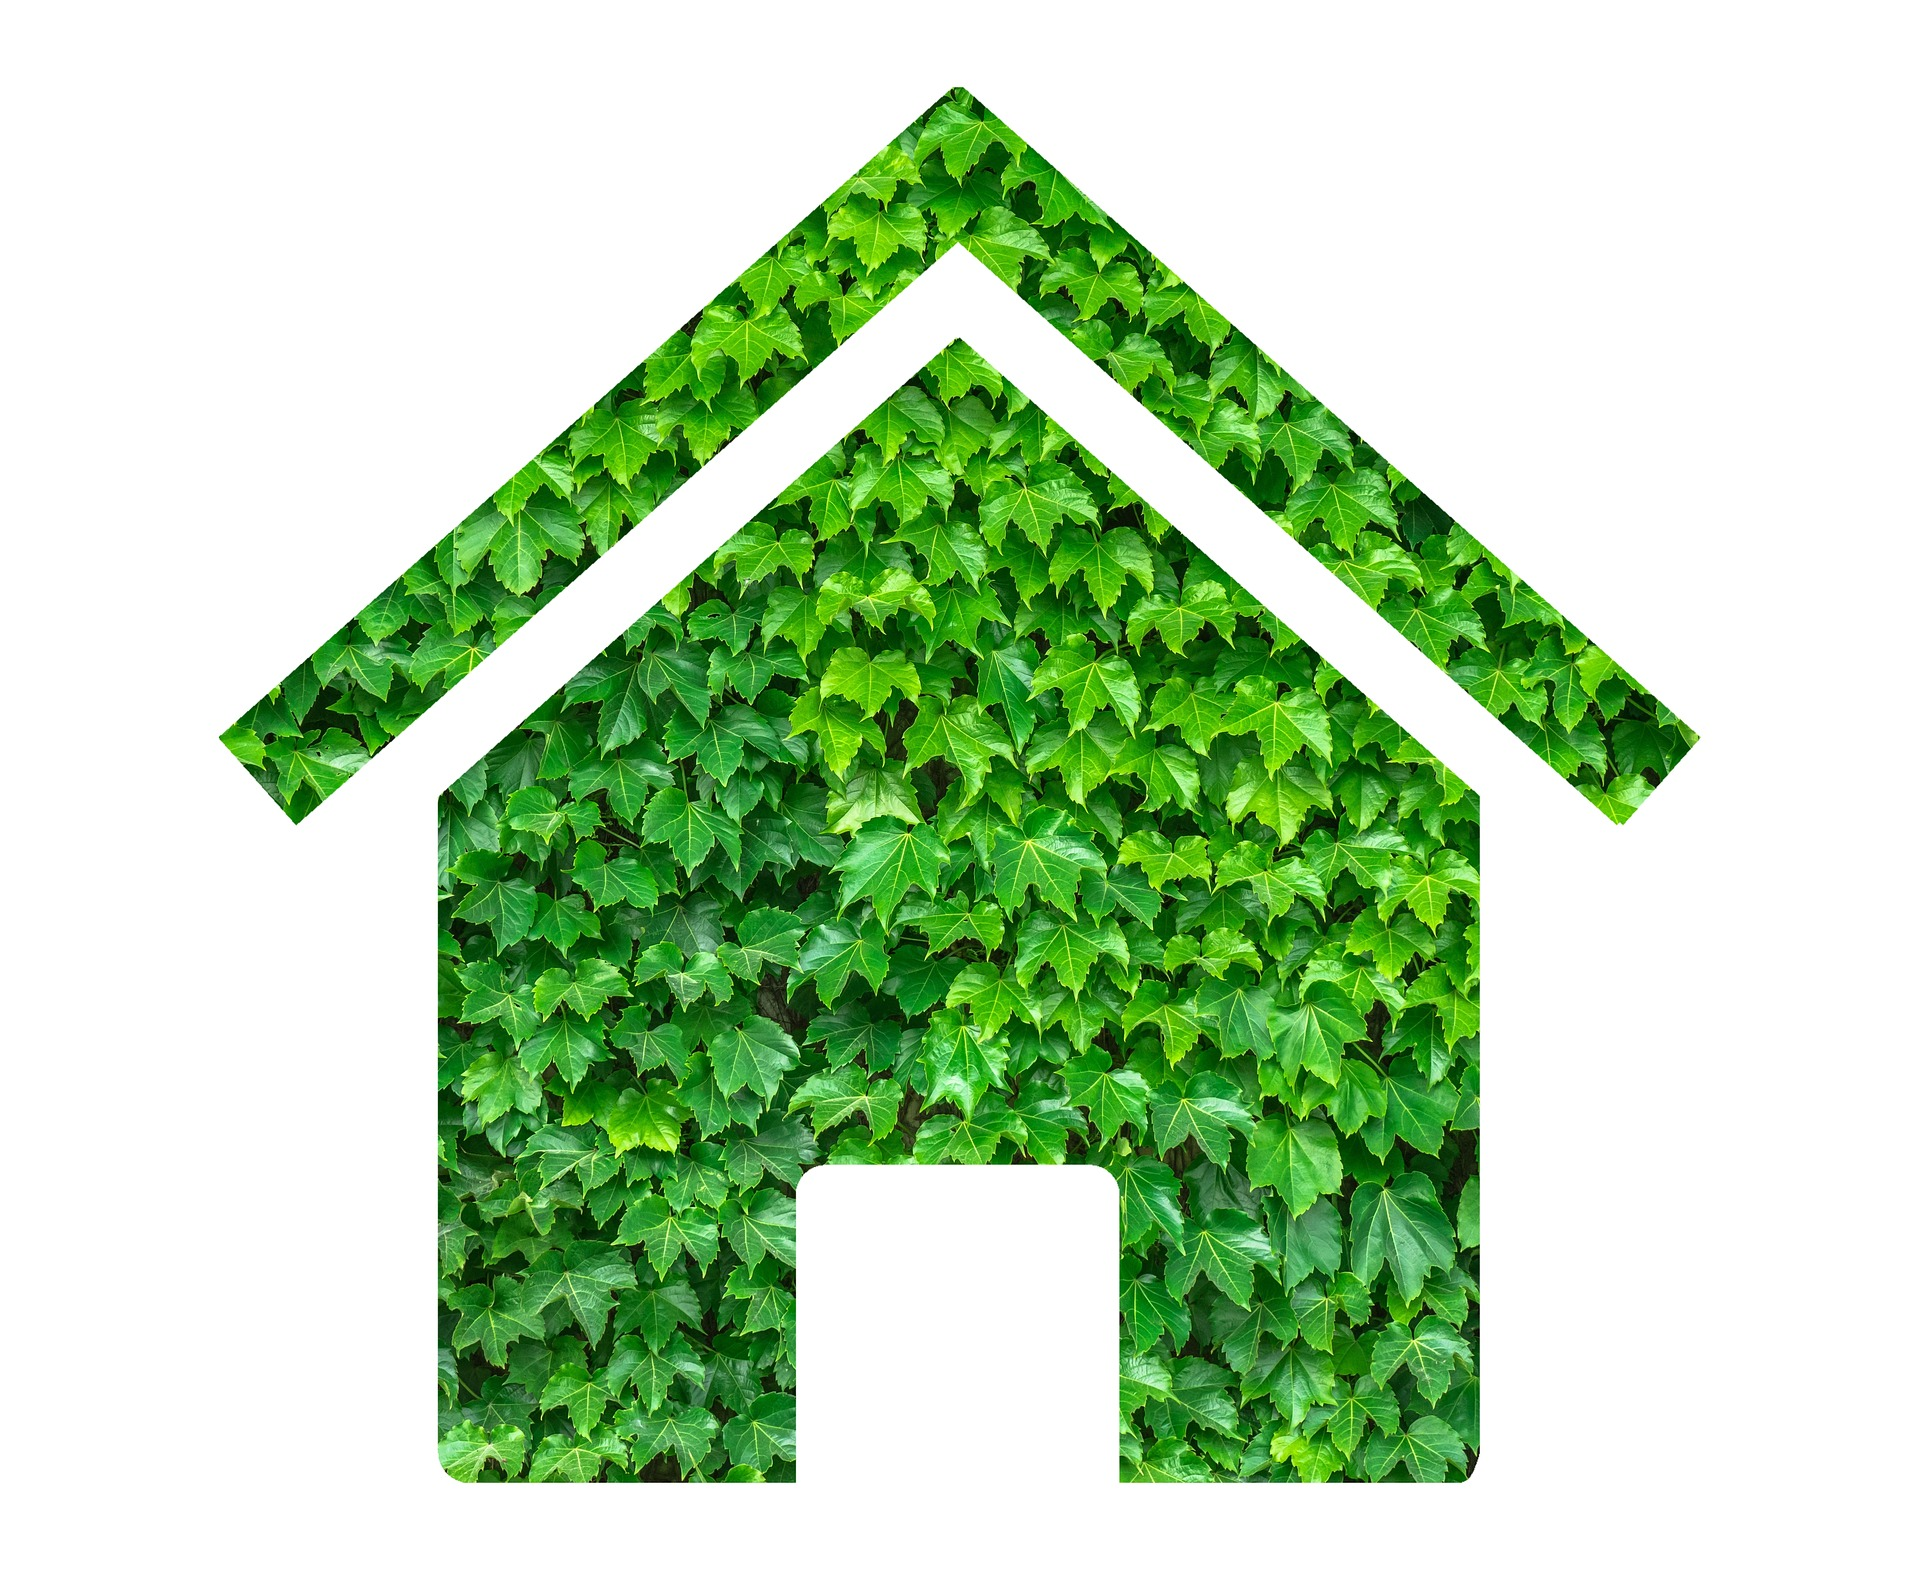 Green Home grant